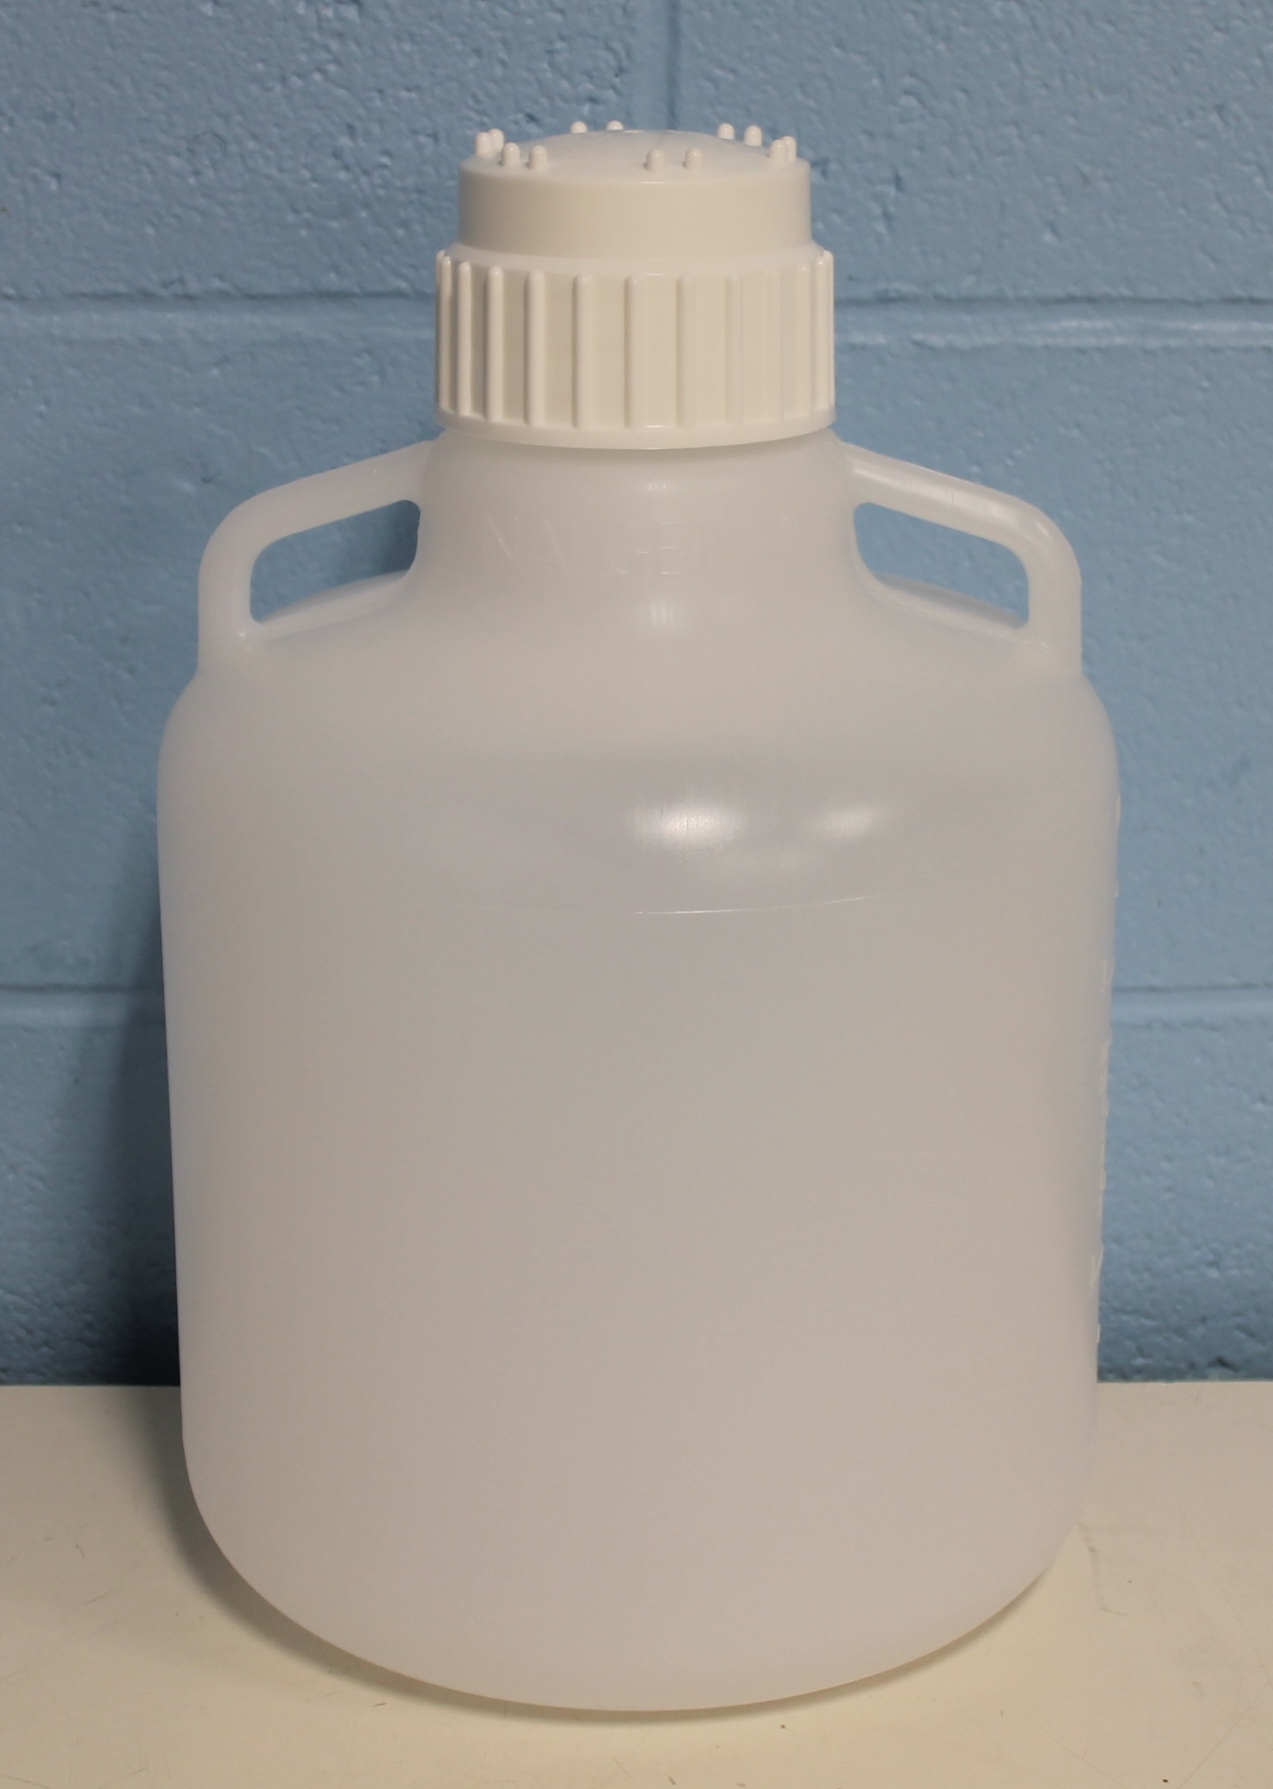 Nalgene 2210-0020 10L Round LDPE Carboys with Handles Image